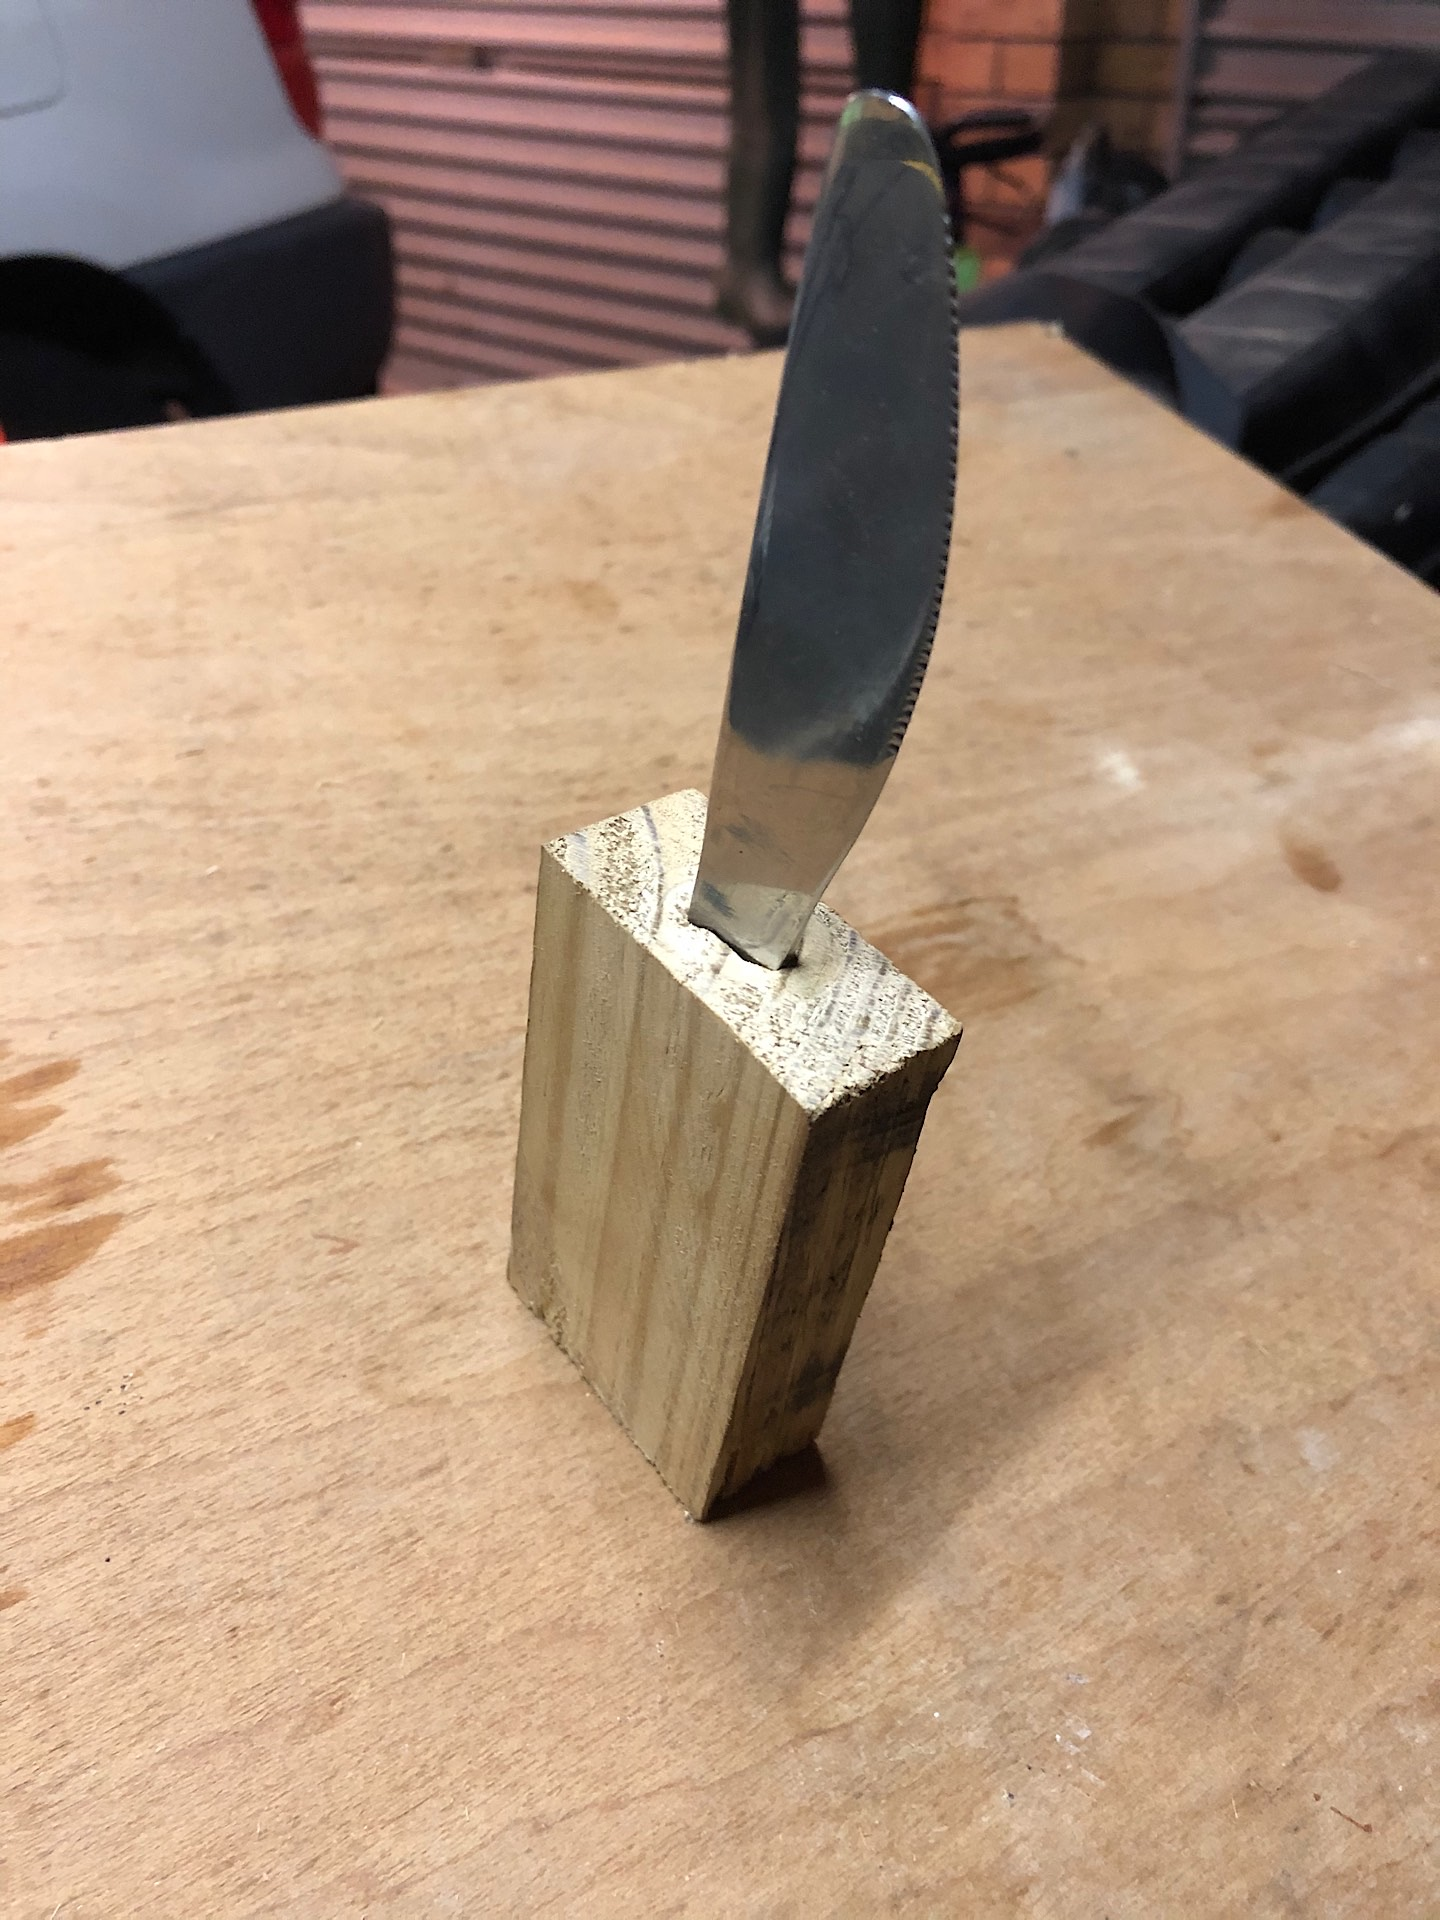 Butter knife in future wooden handle